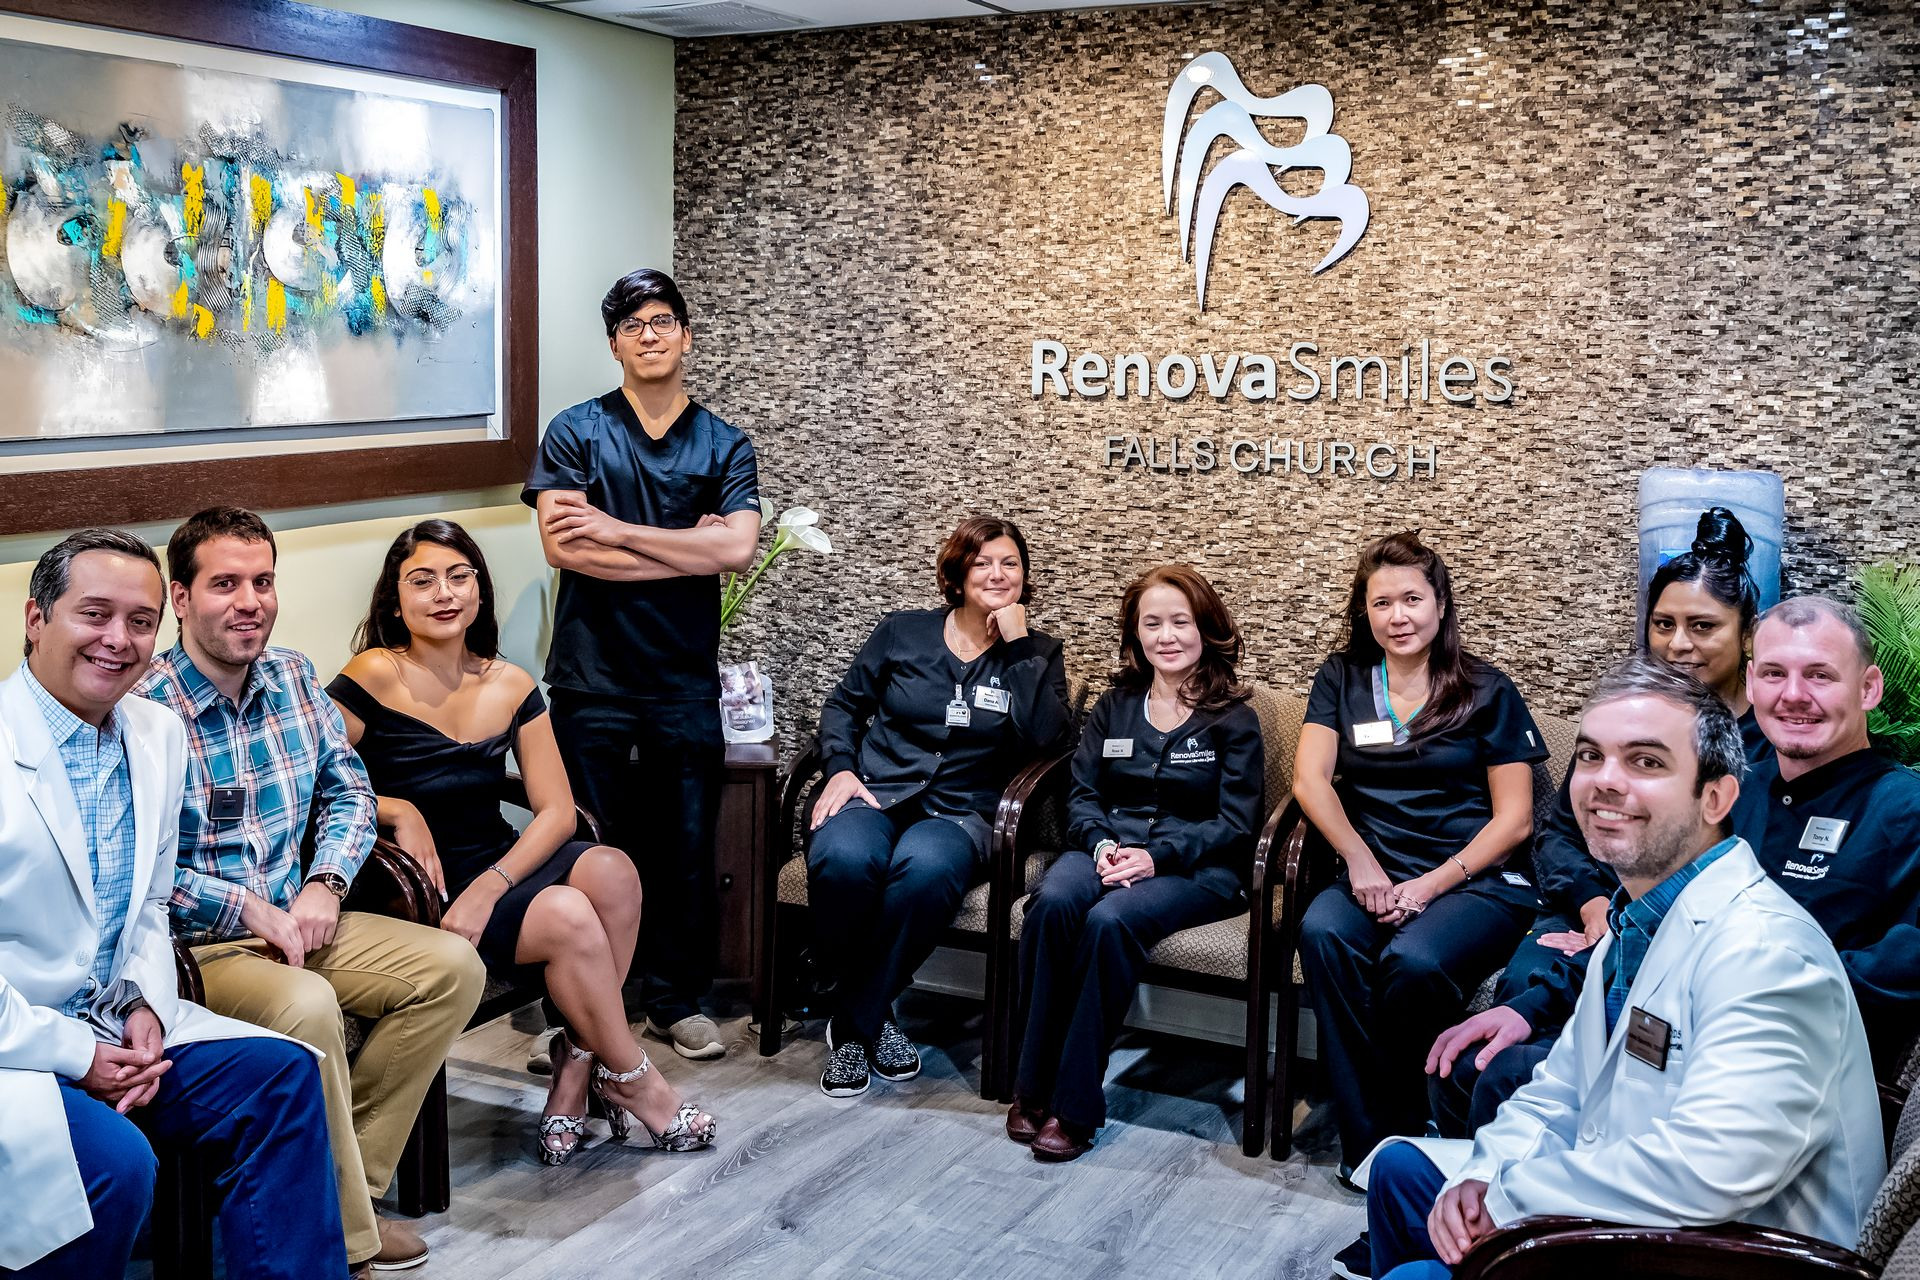 RenovaSmiles Falls Church dentists, providers, managers and staff